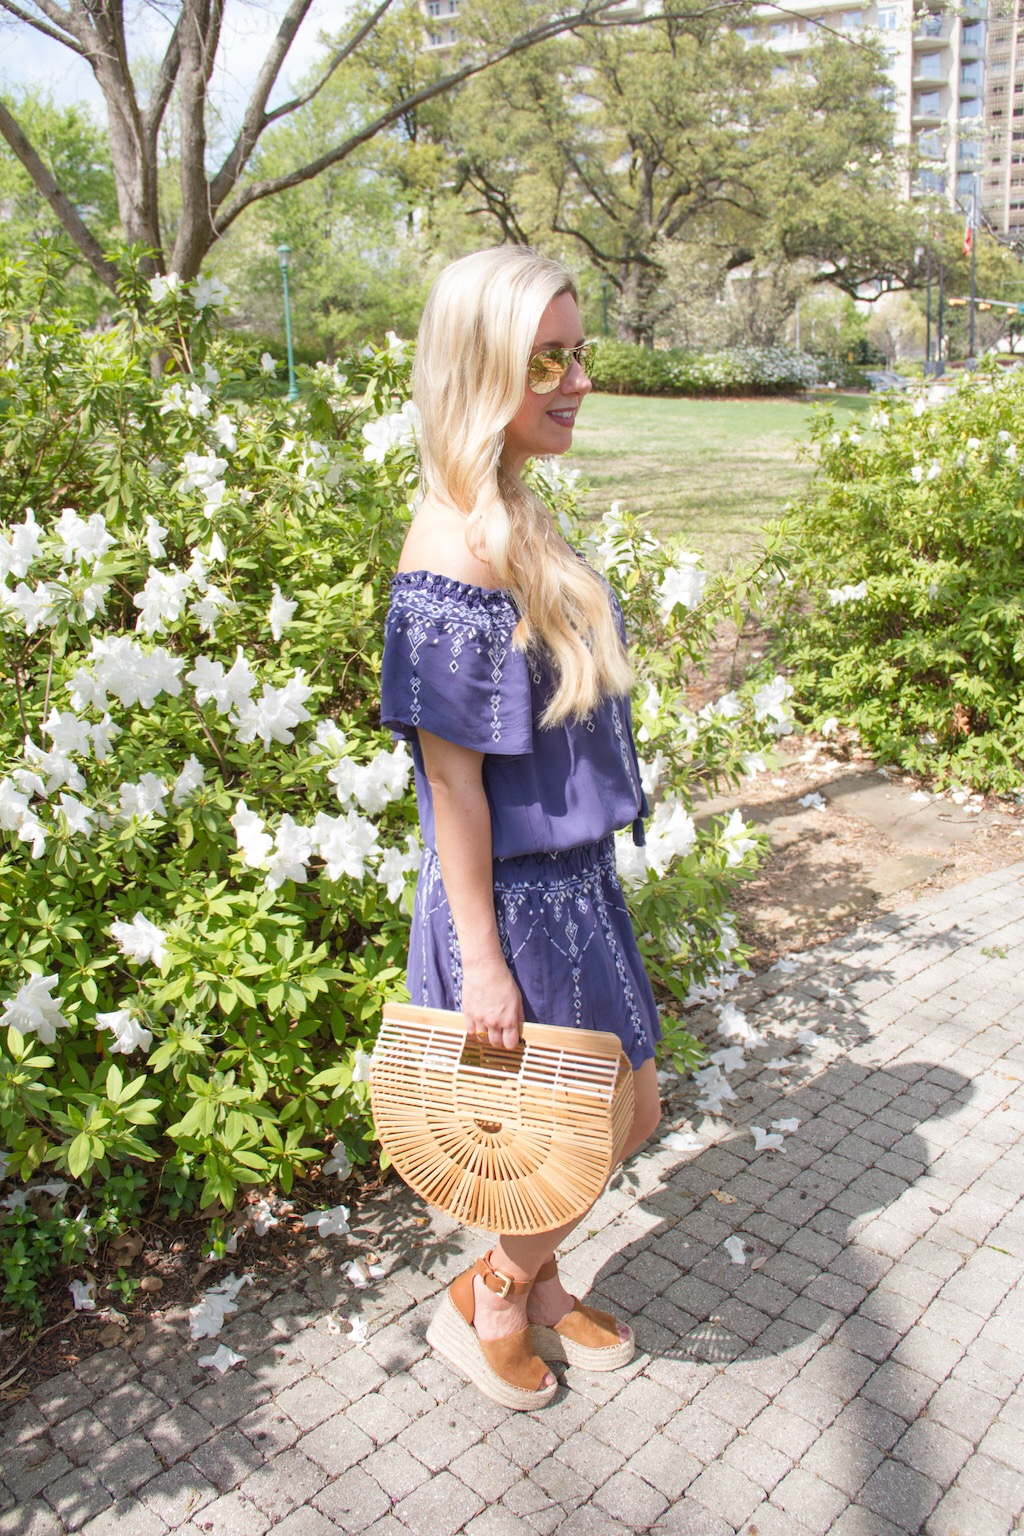 The Off The Shoulder Dress For Spring | The Darling Petite Diva | Nicole Kirk